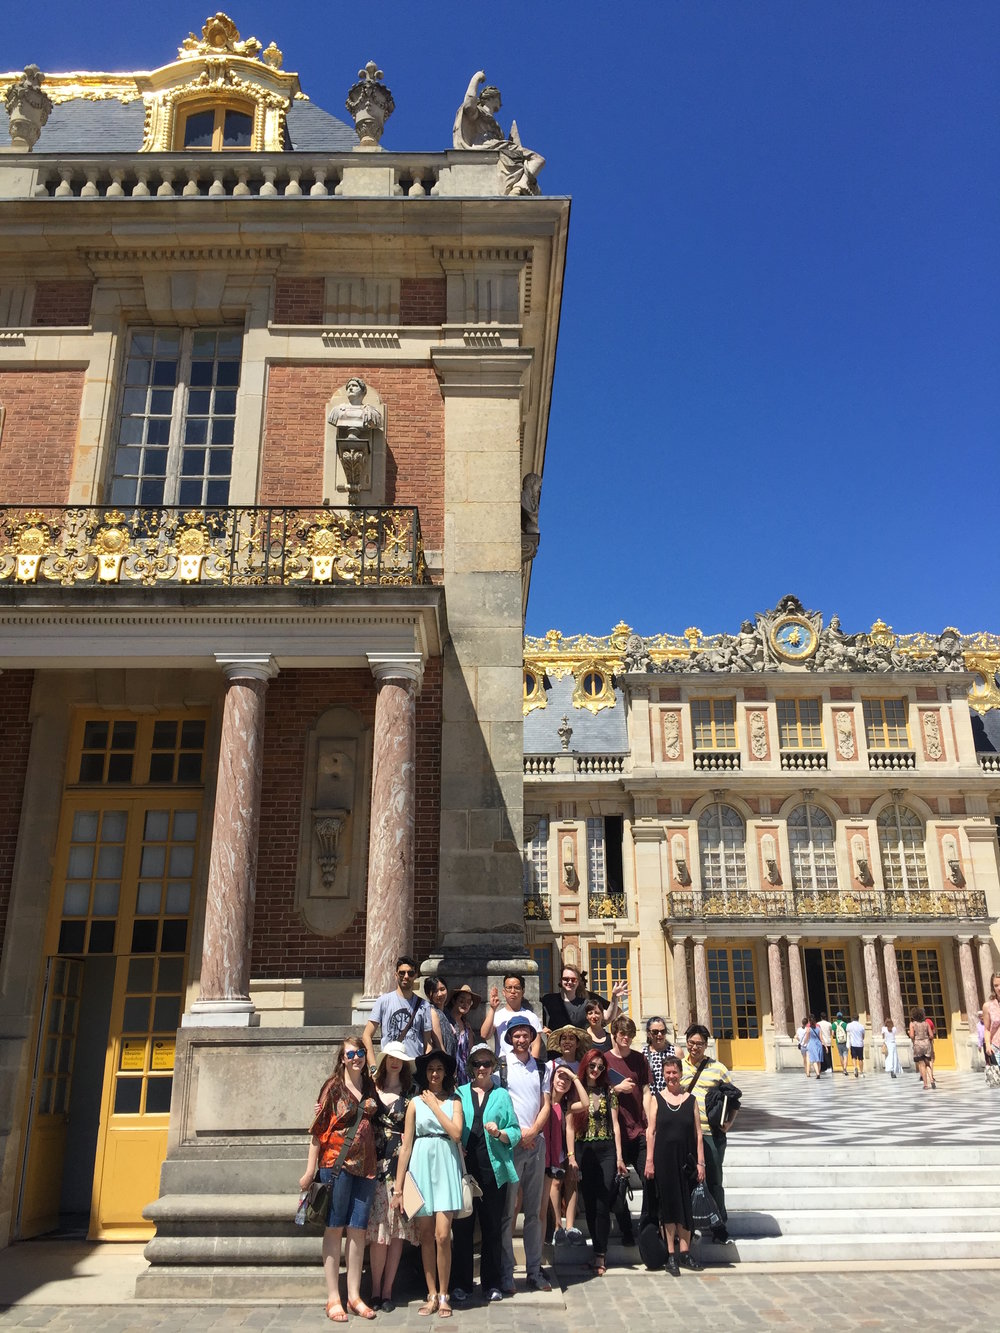 Our group did a day trip to the Palace of Versailles to visit the home of Louis XIV.